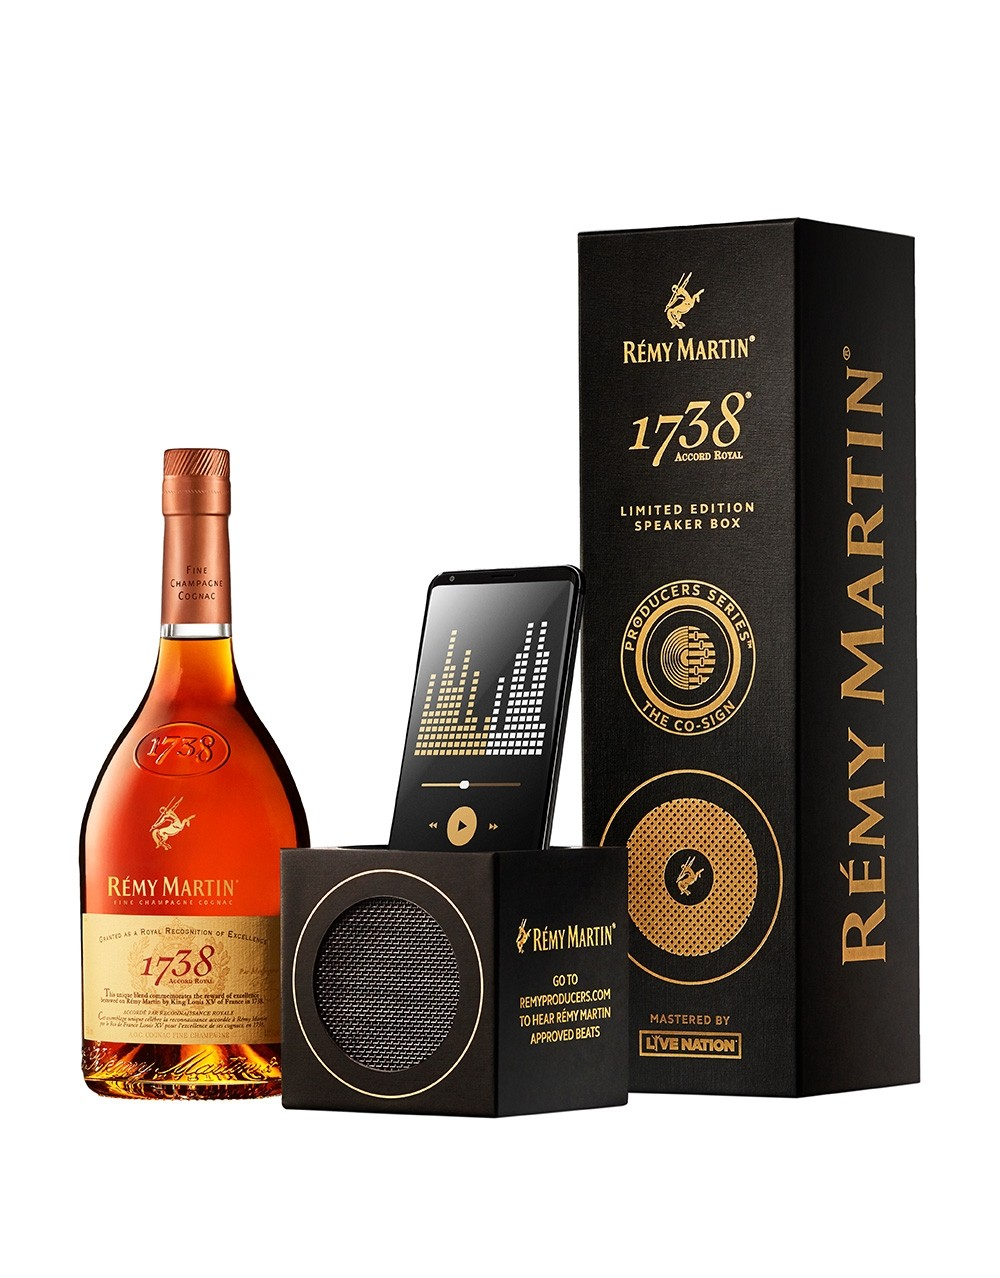 The Remy Martin 1738 174 Limited Edition Speaker Box Buy